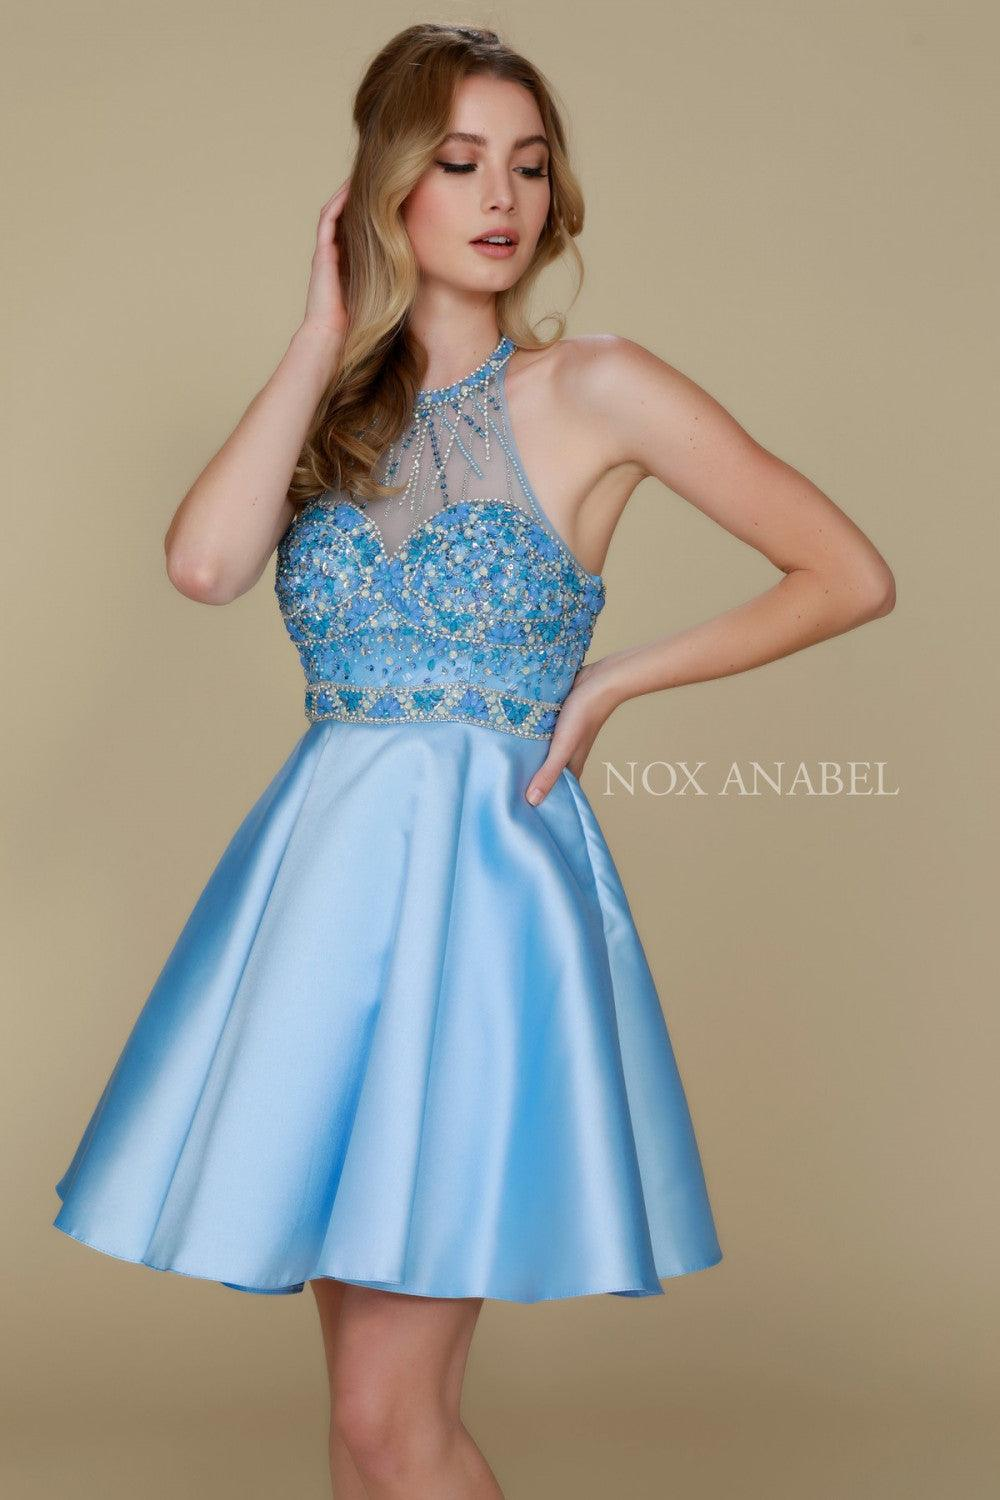 f93714dfd70 ... Short Sexy Prom Homecoming Dress - The Dress Outlet Ice Blue Nox Anabel  ...